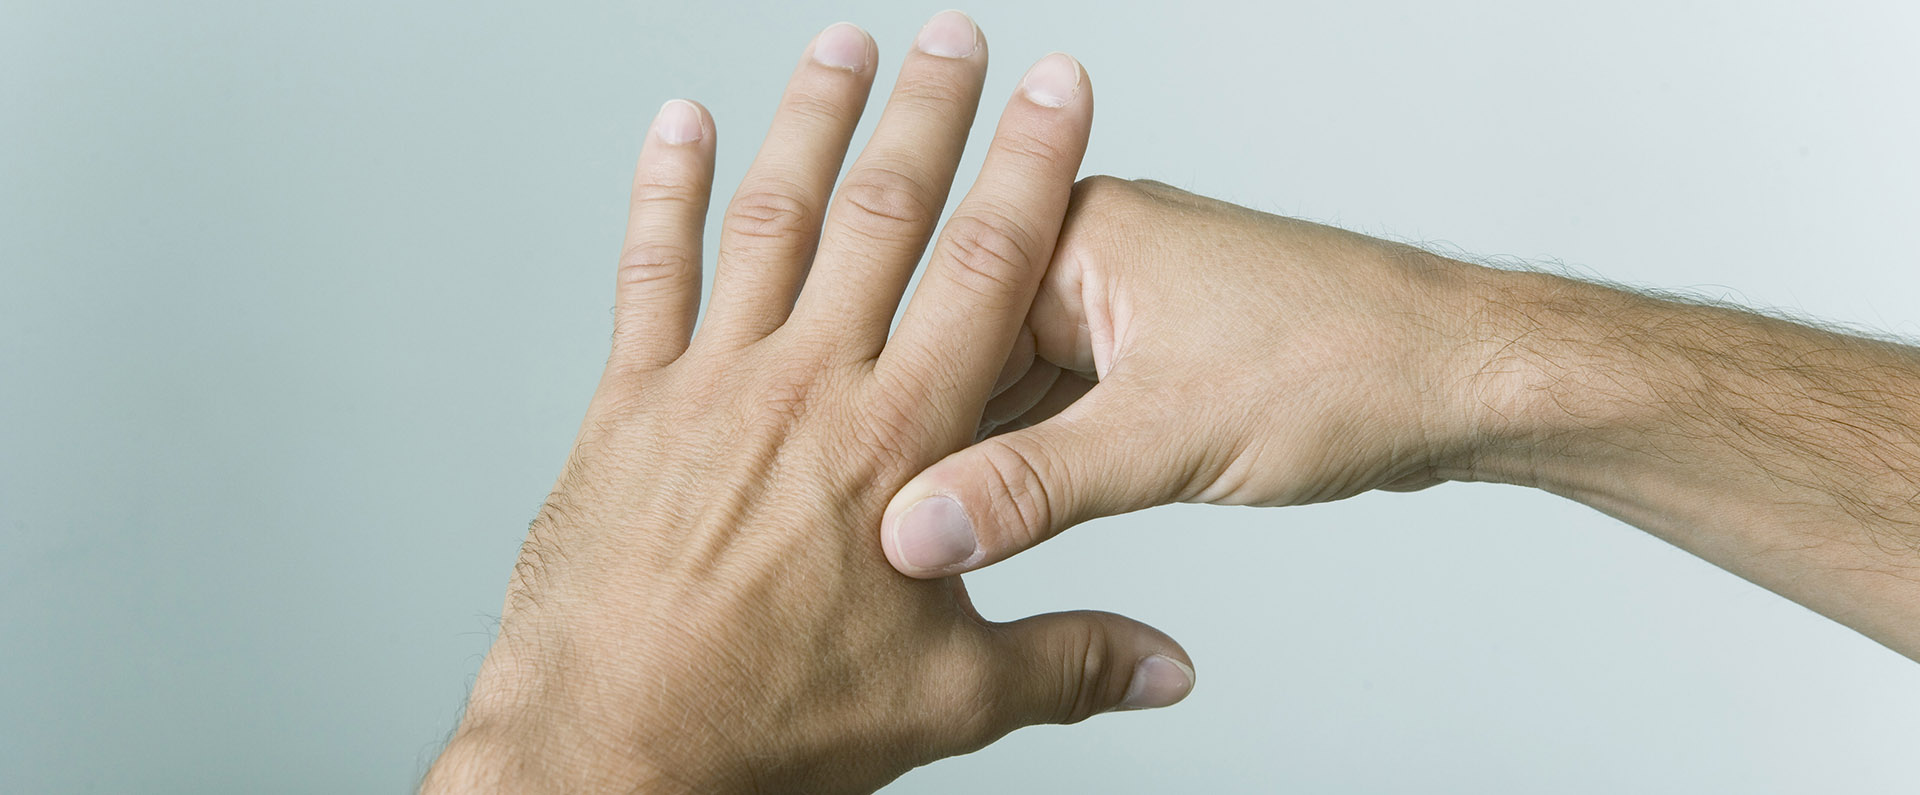 tecniche salutari stock image 42541589 Hands alternative medicine topbig